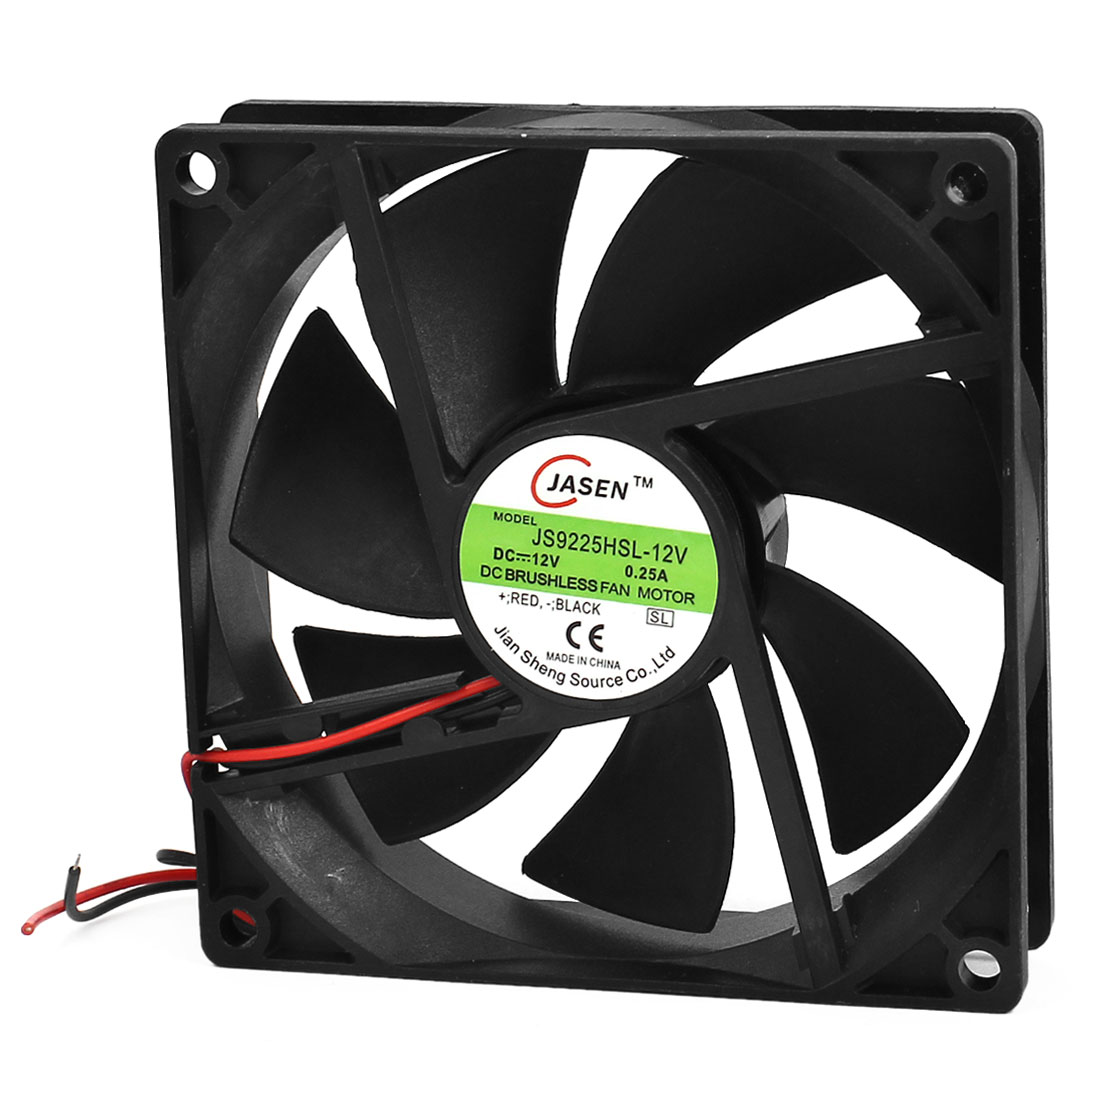 DC 12V 0.25A 2-Wire Brushless 90mm x 90mm x 25mm Cooling Fan for Case Radiator